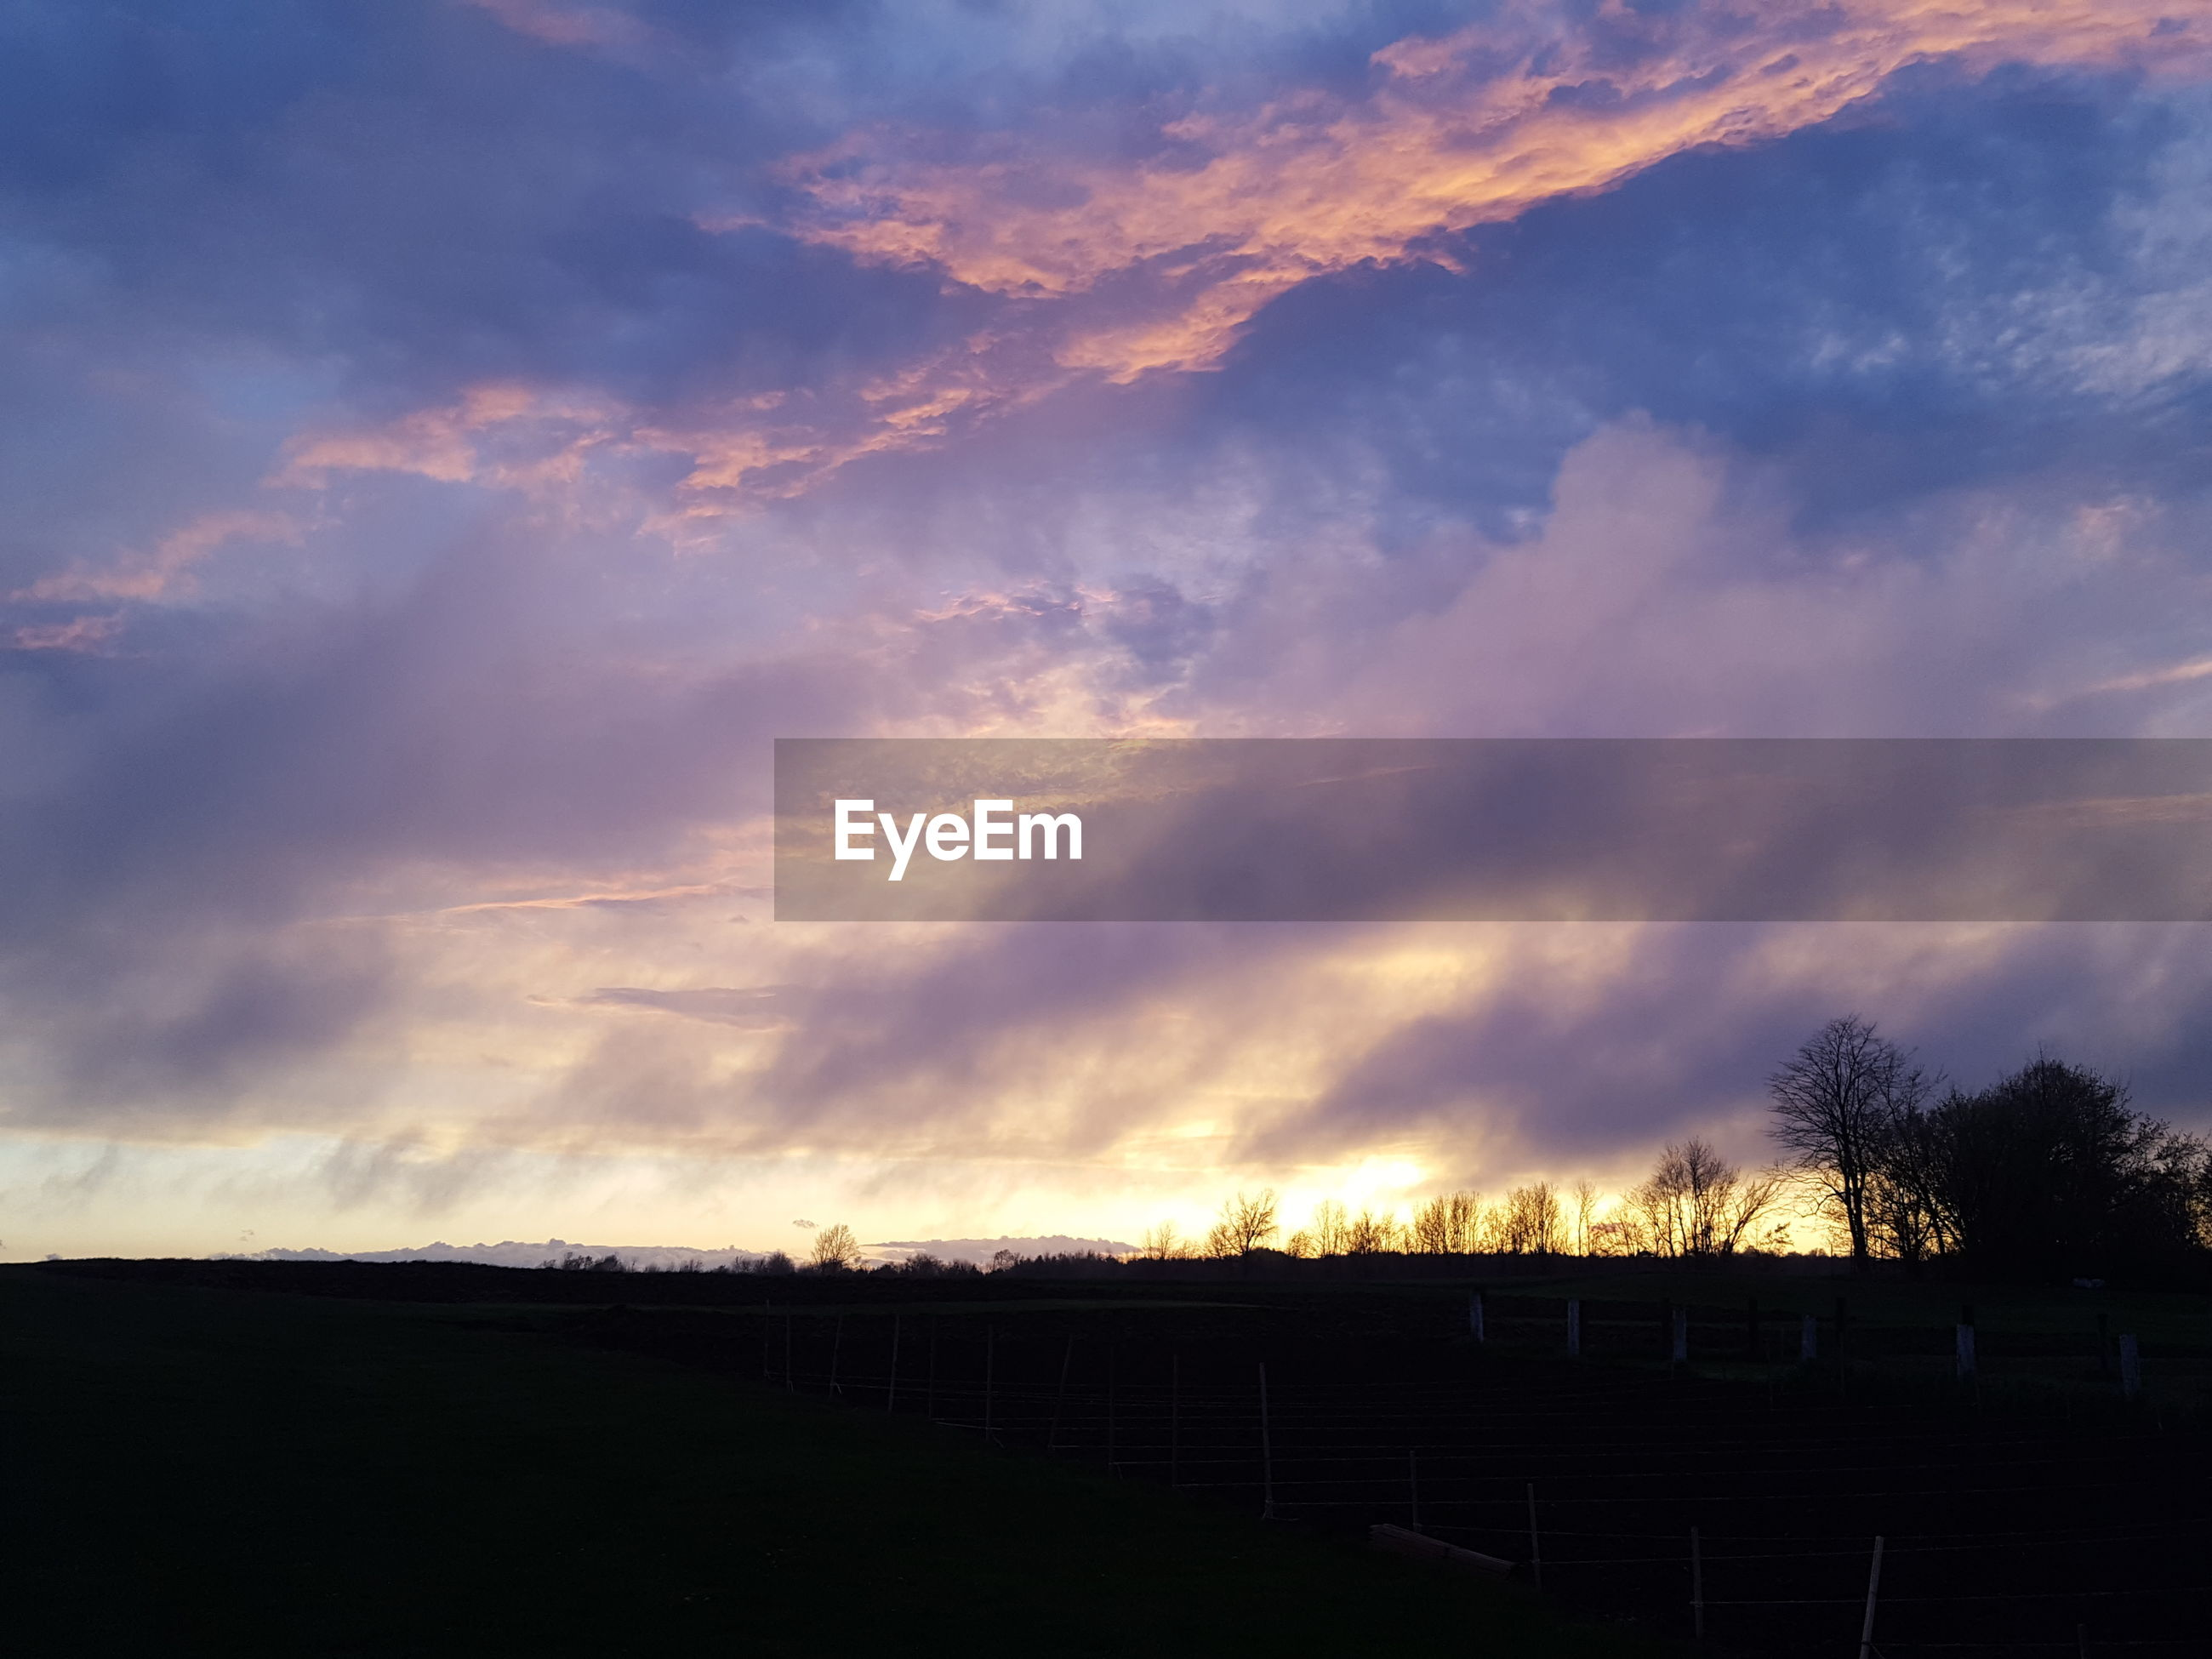 SCENIC VIEW OF LANDSCAPE AGAINST CLOUDY SKY AT SUNSET